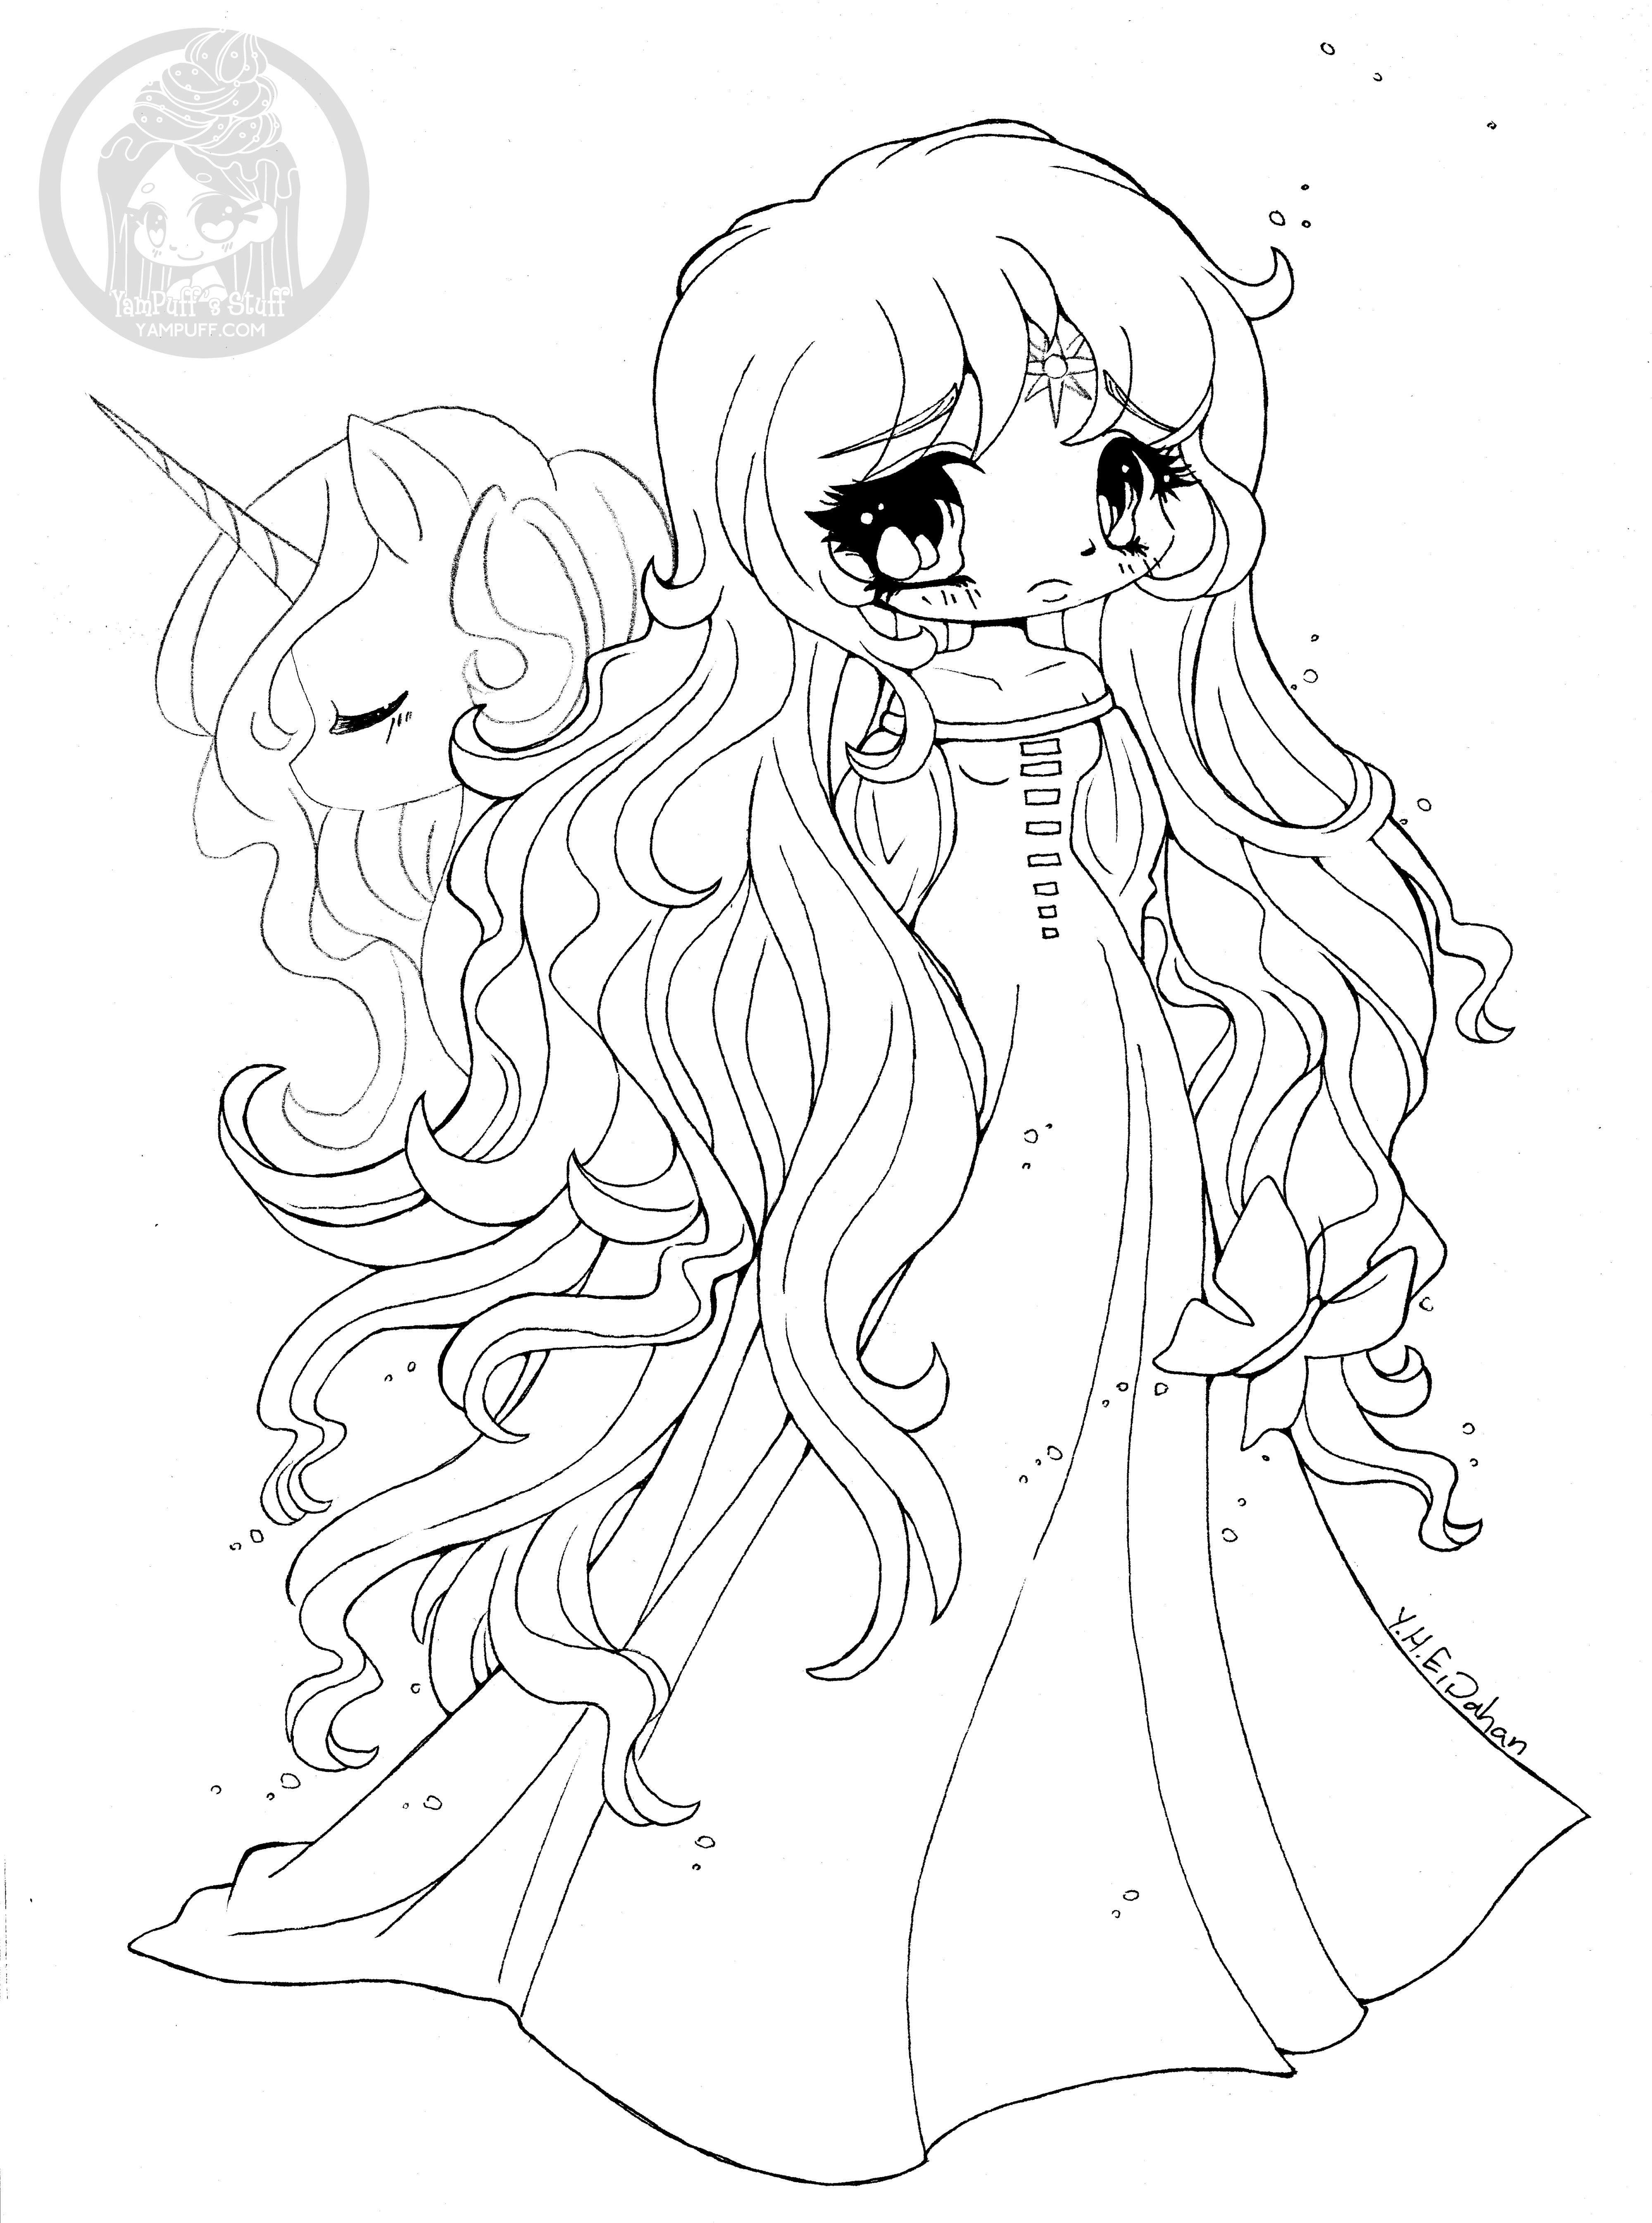 anime unicorn girl coloring pages 17 best images about unicorns to color on pinterest unicorn pages girl coloring anime